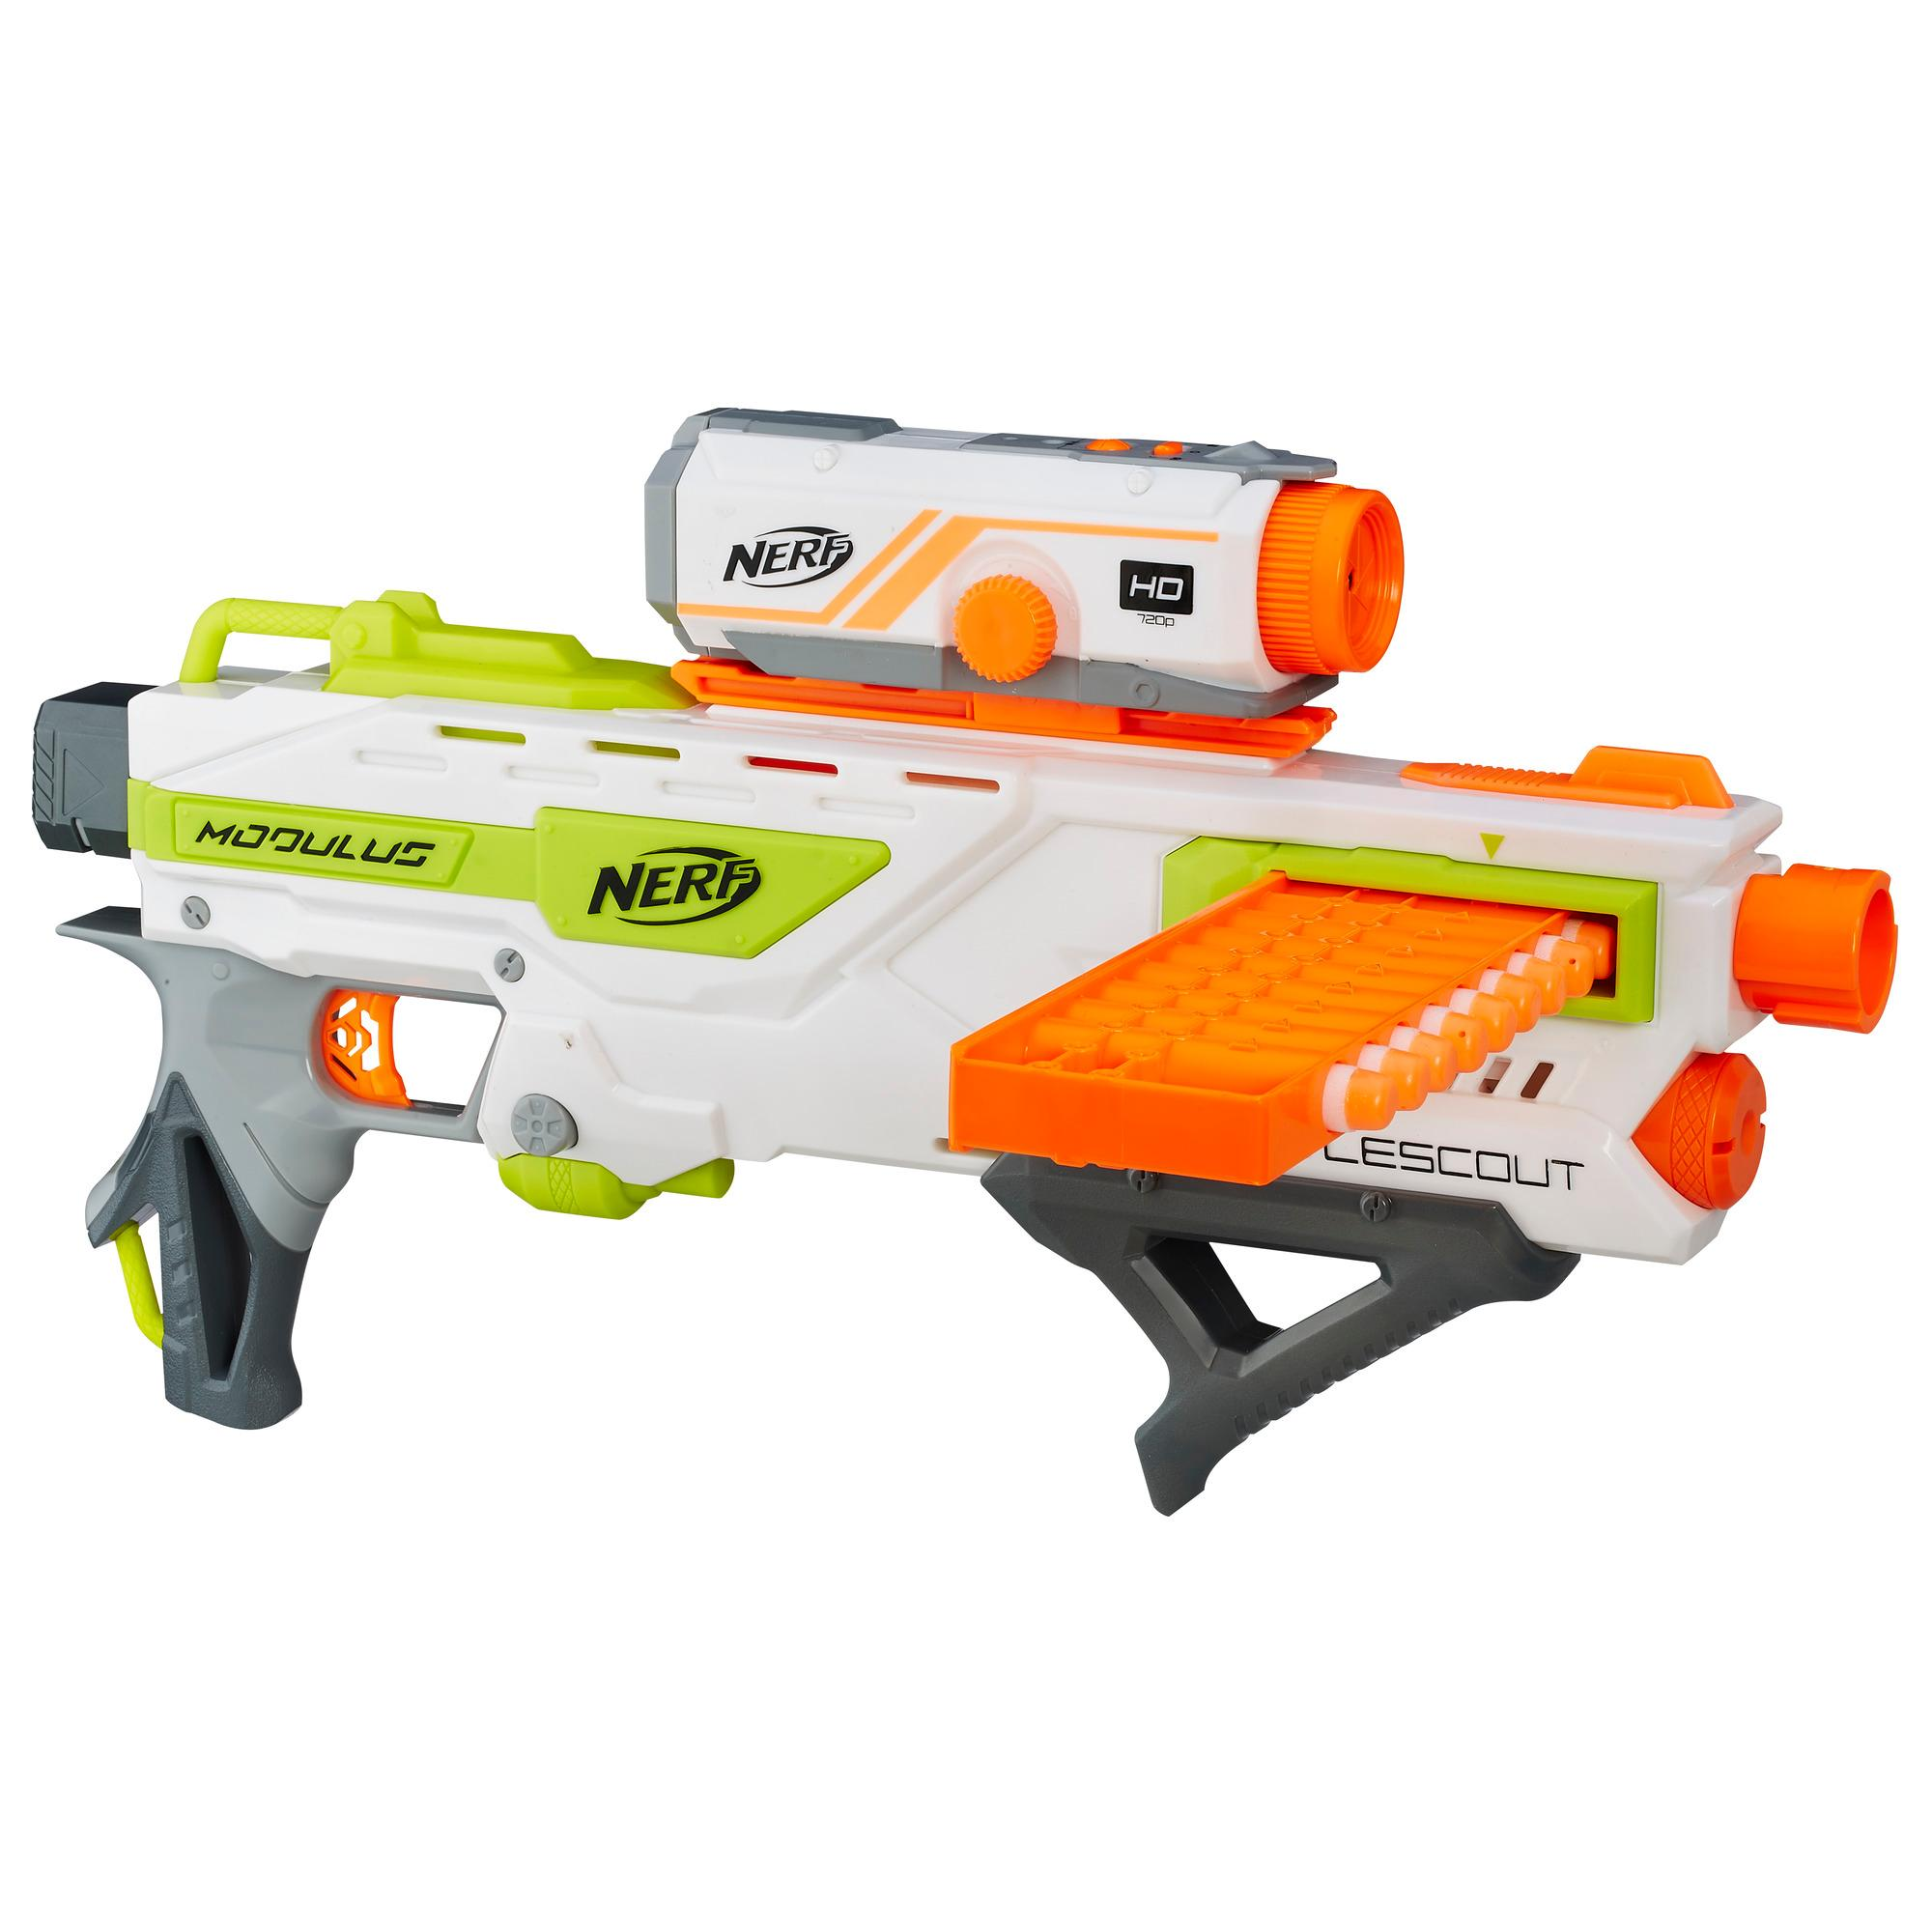 Amazon.com: Nerf Modulus Recon Battlescout: Toys & Games